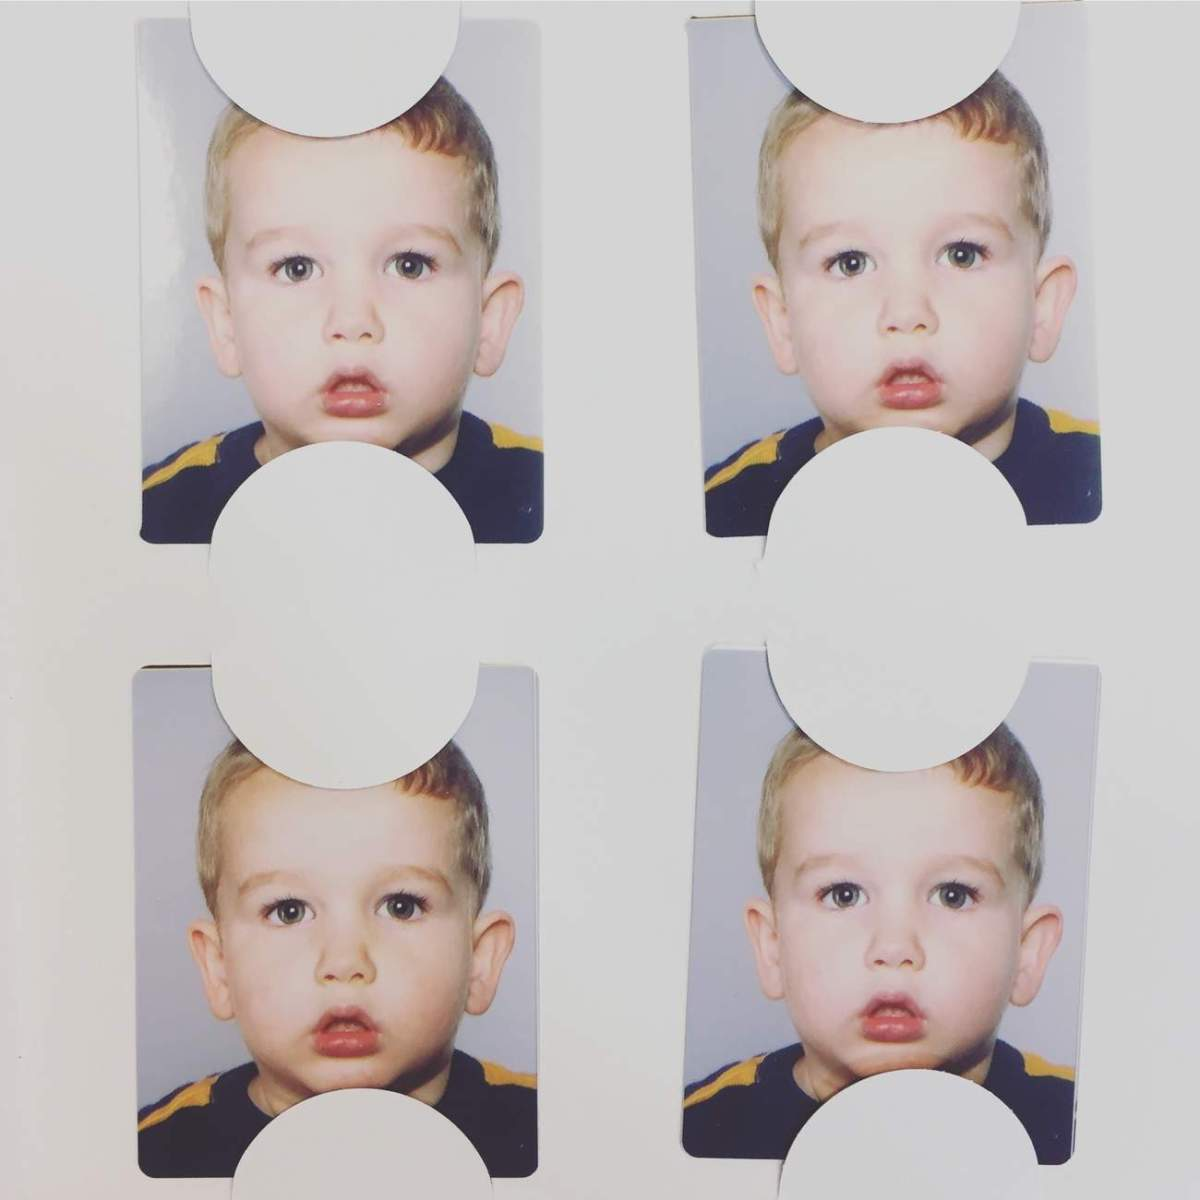 I think his recent passport photos show off his thug side!